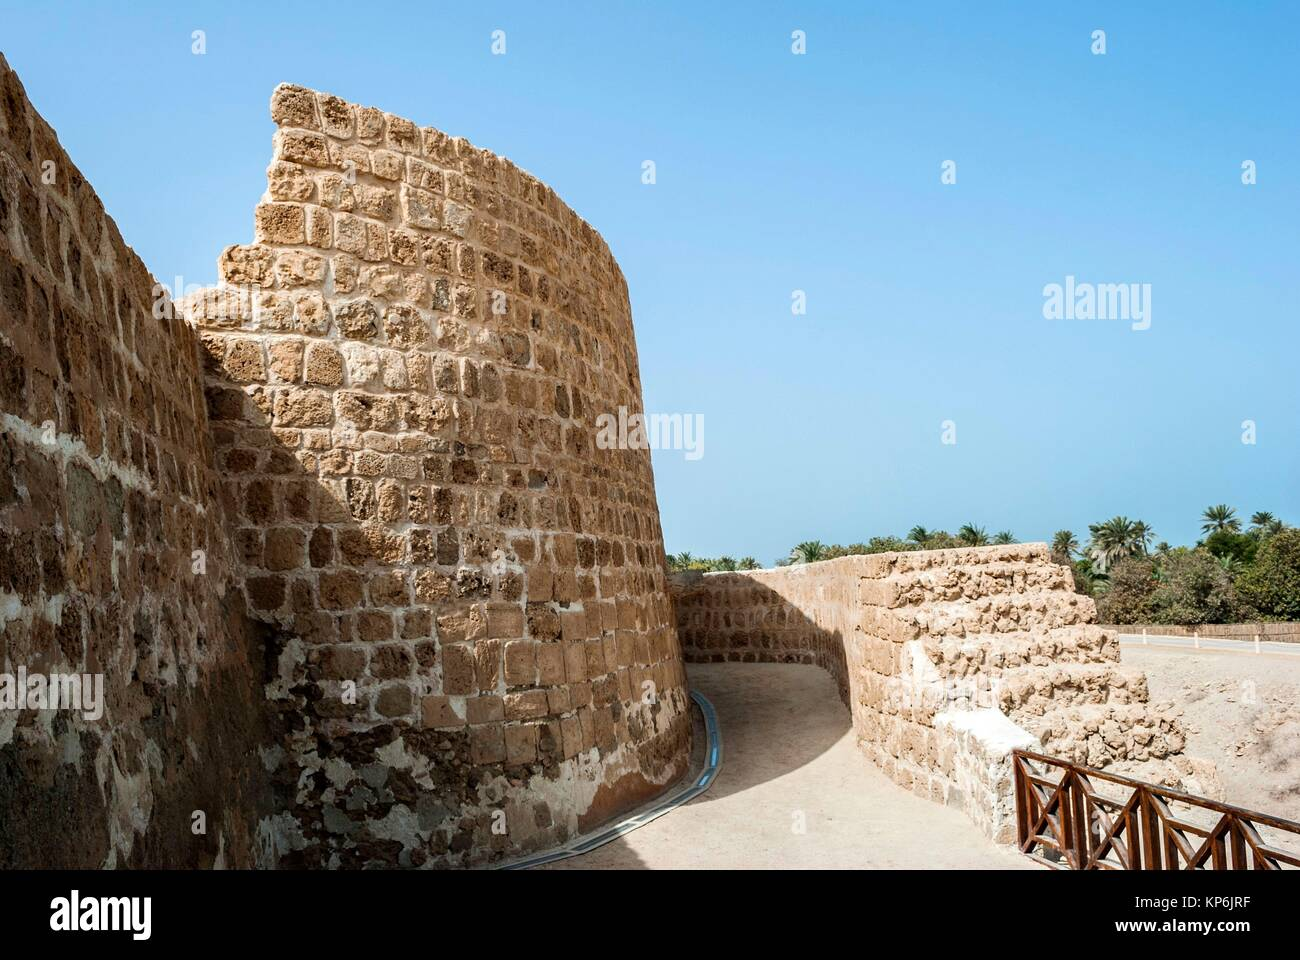 Qal at al-Bahrain (Bahrain Fort, Portuguese Fort). Bahrain, United Arab Emirates. - Stock Image